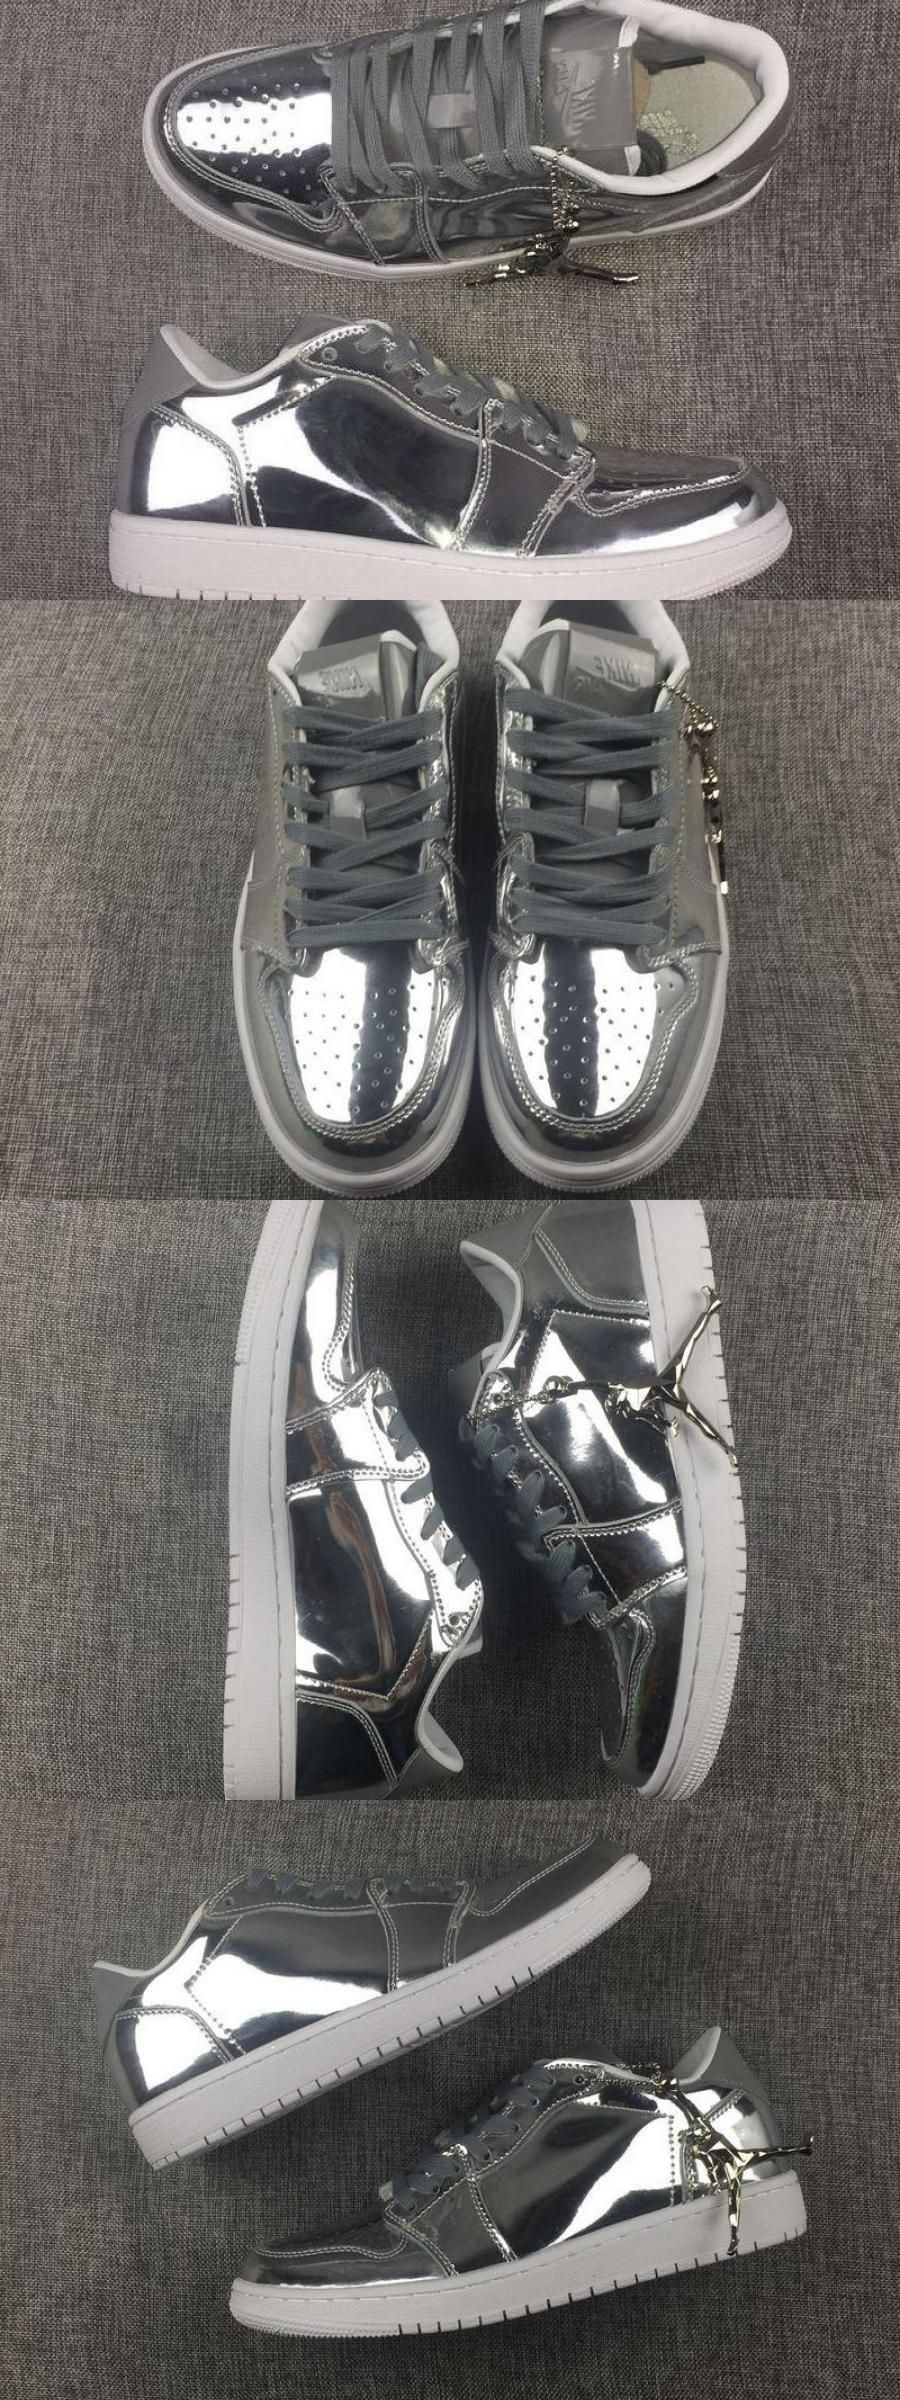 2020 的 Air Jordan 1 Low Pinnacle Metallic Silver For 主题